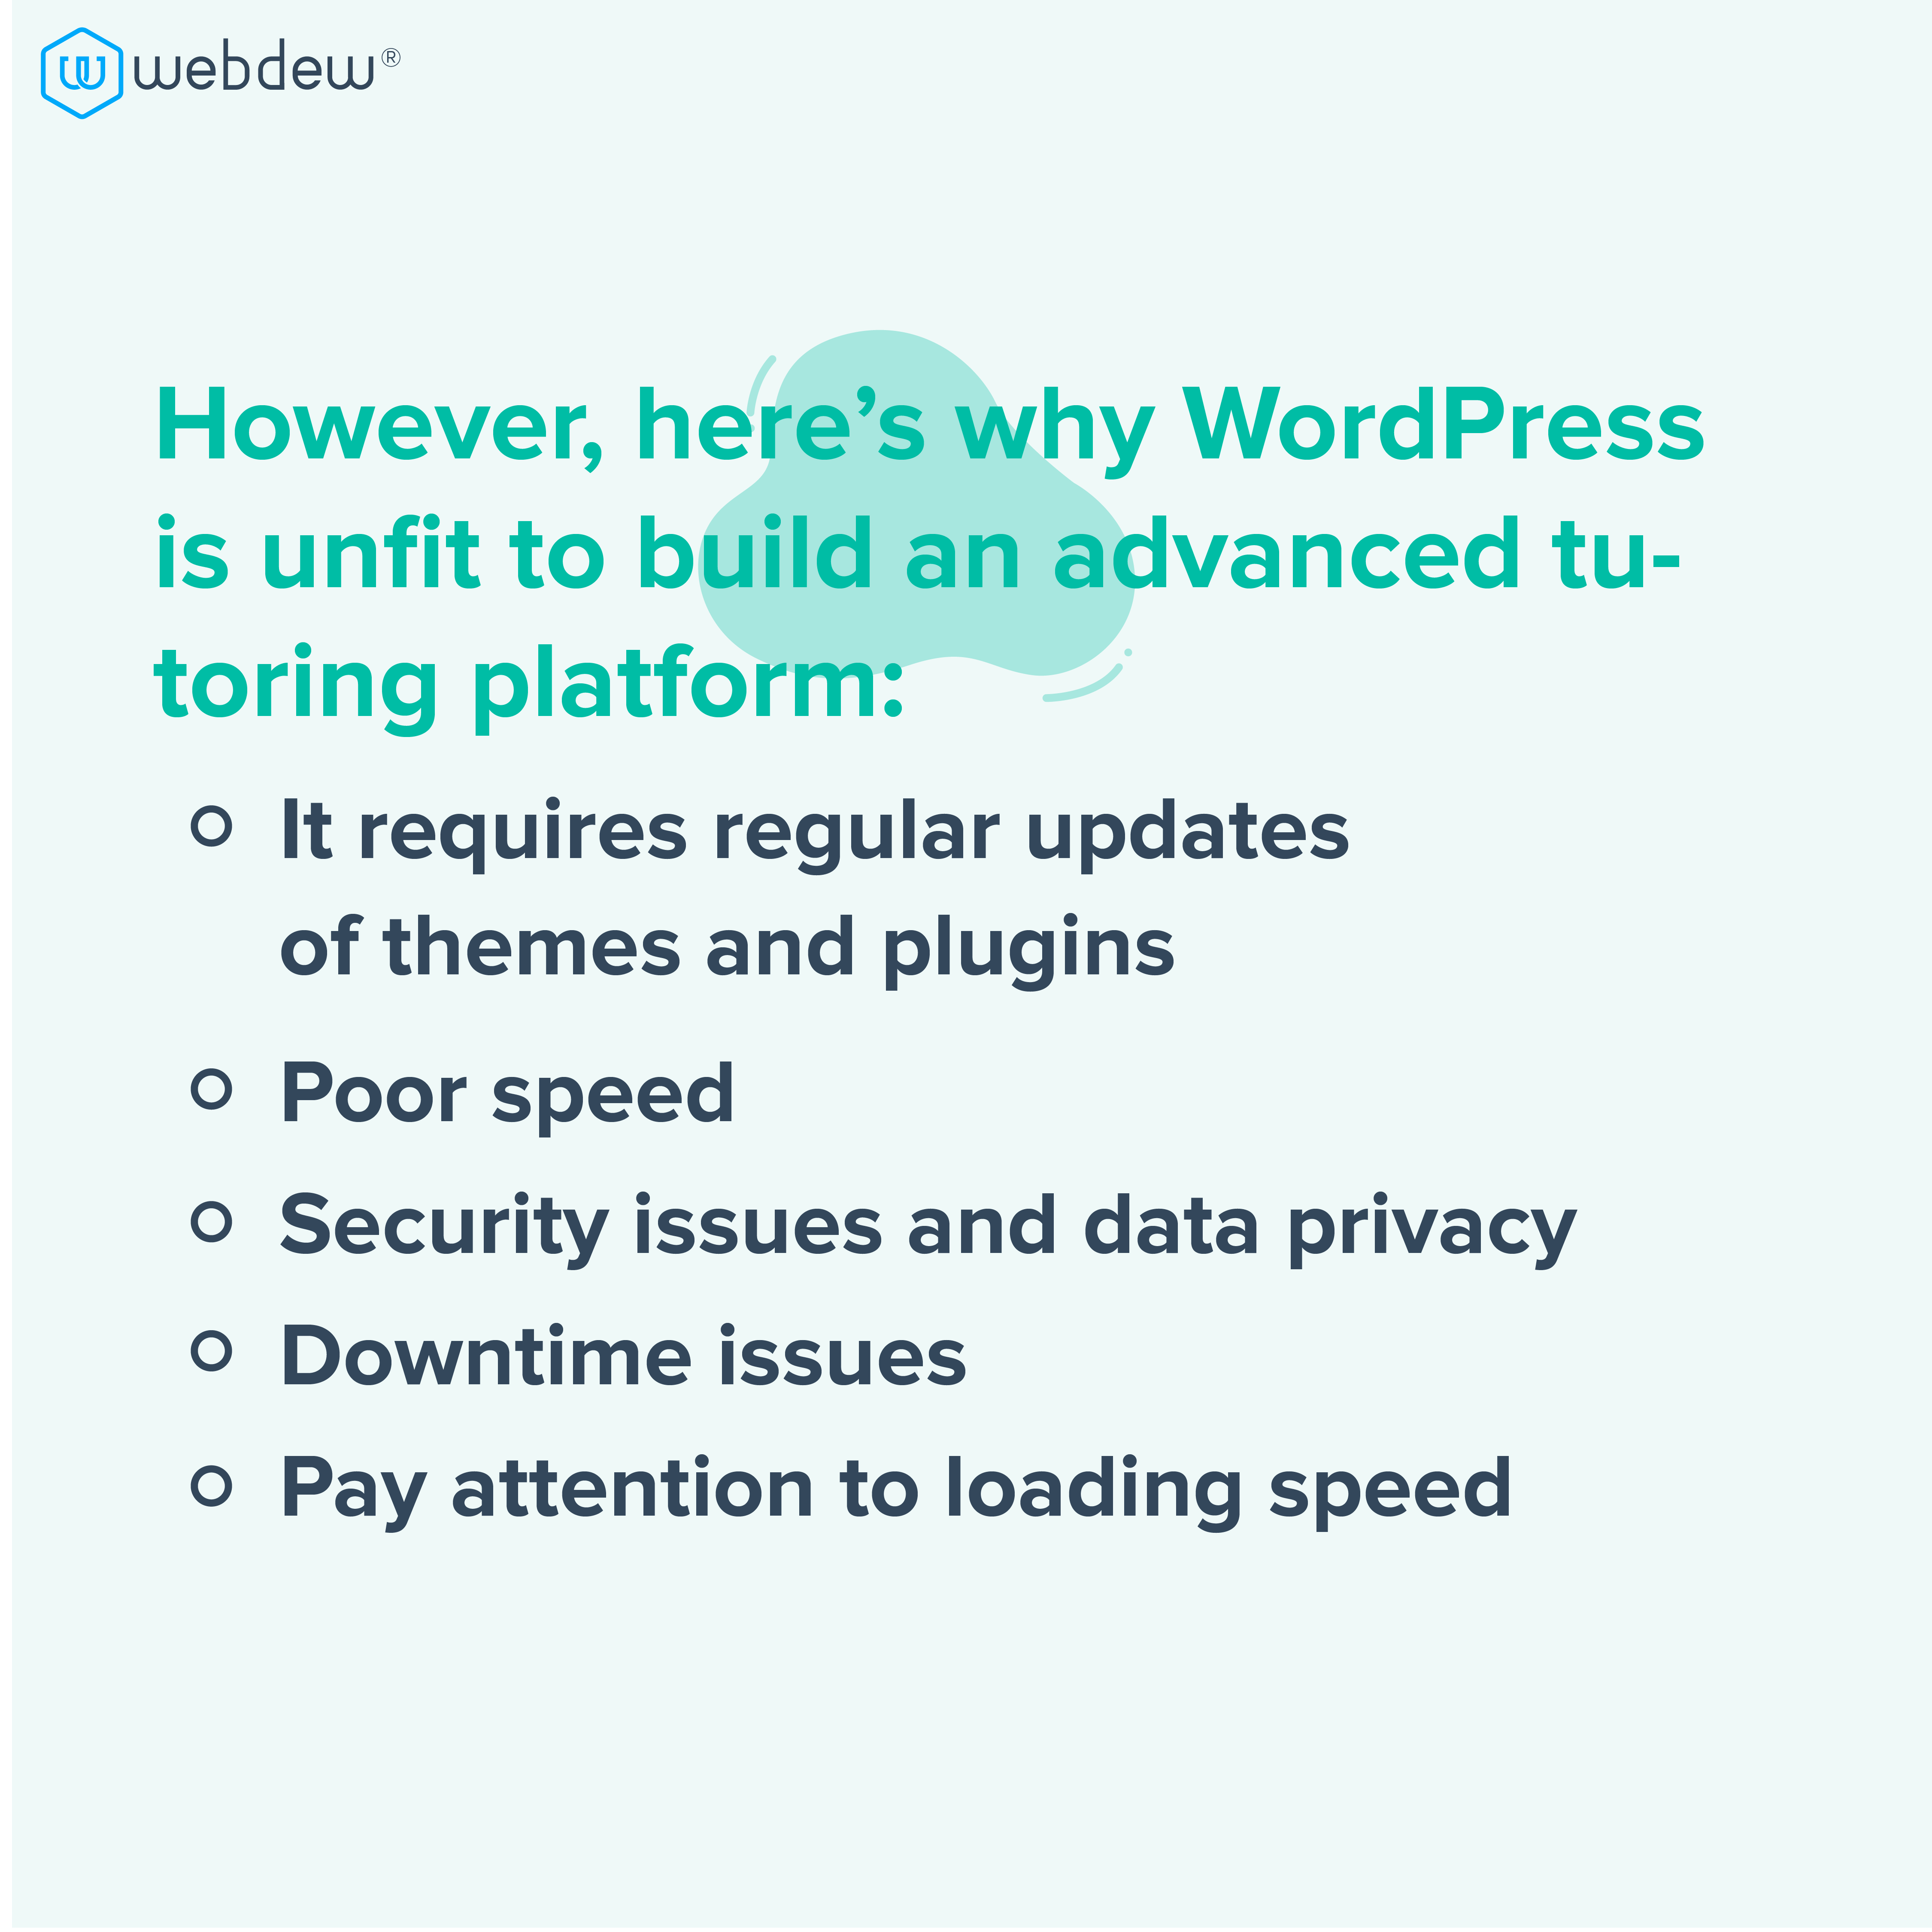 reasons-wordpress-is-not-right-to-be-a-tutoring-platform